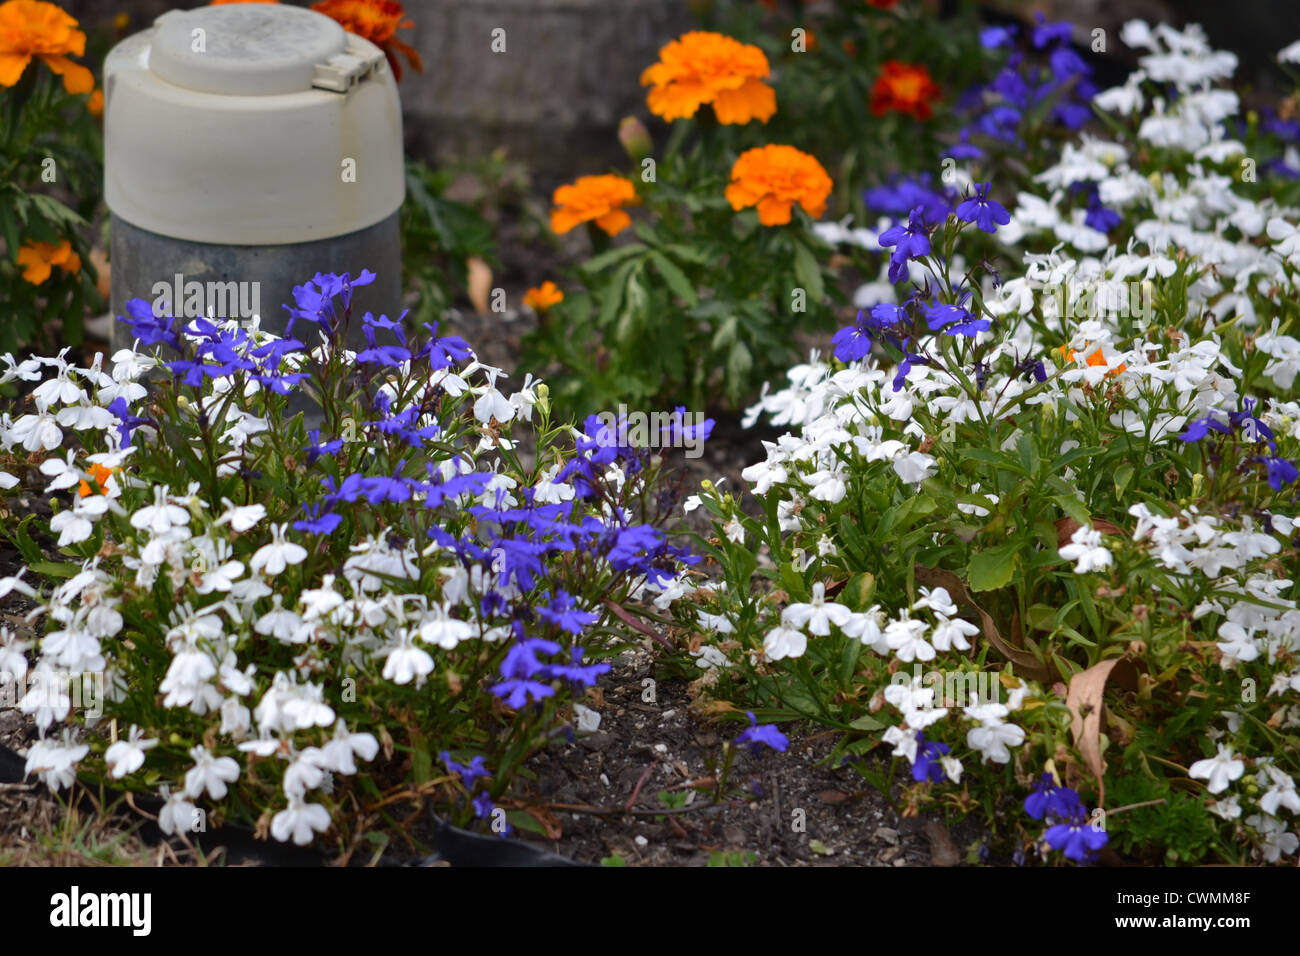 small flower bed surrounding water meter - Stock Image